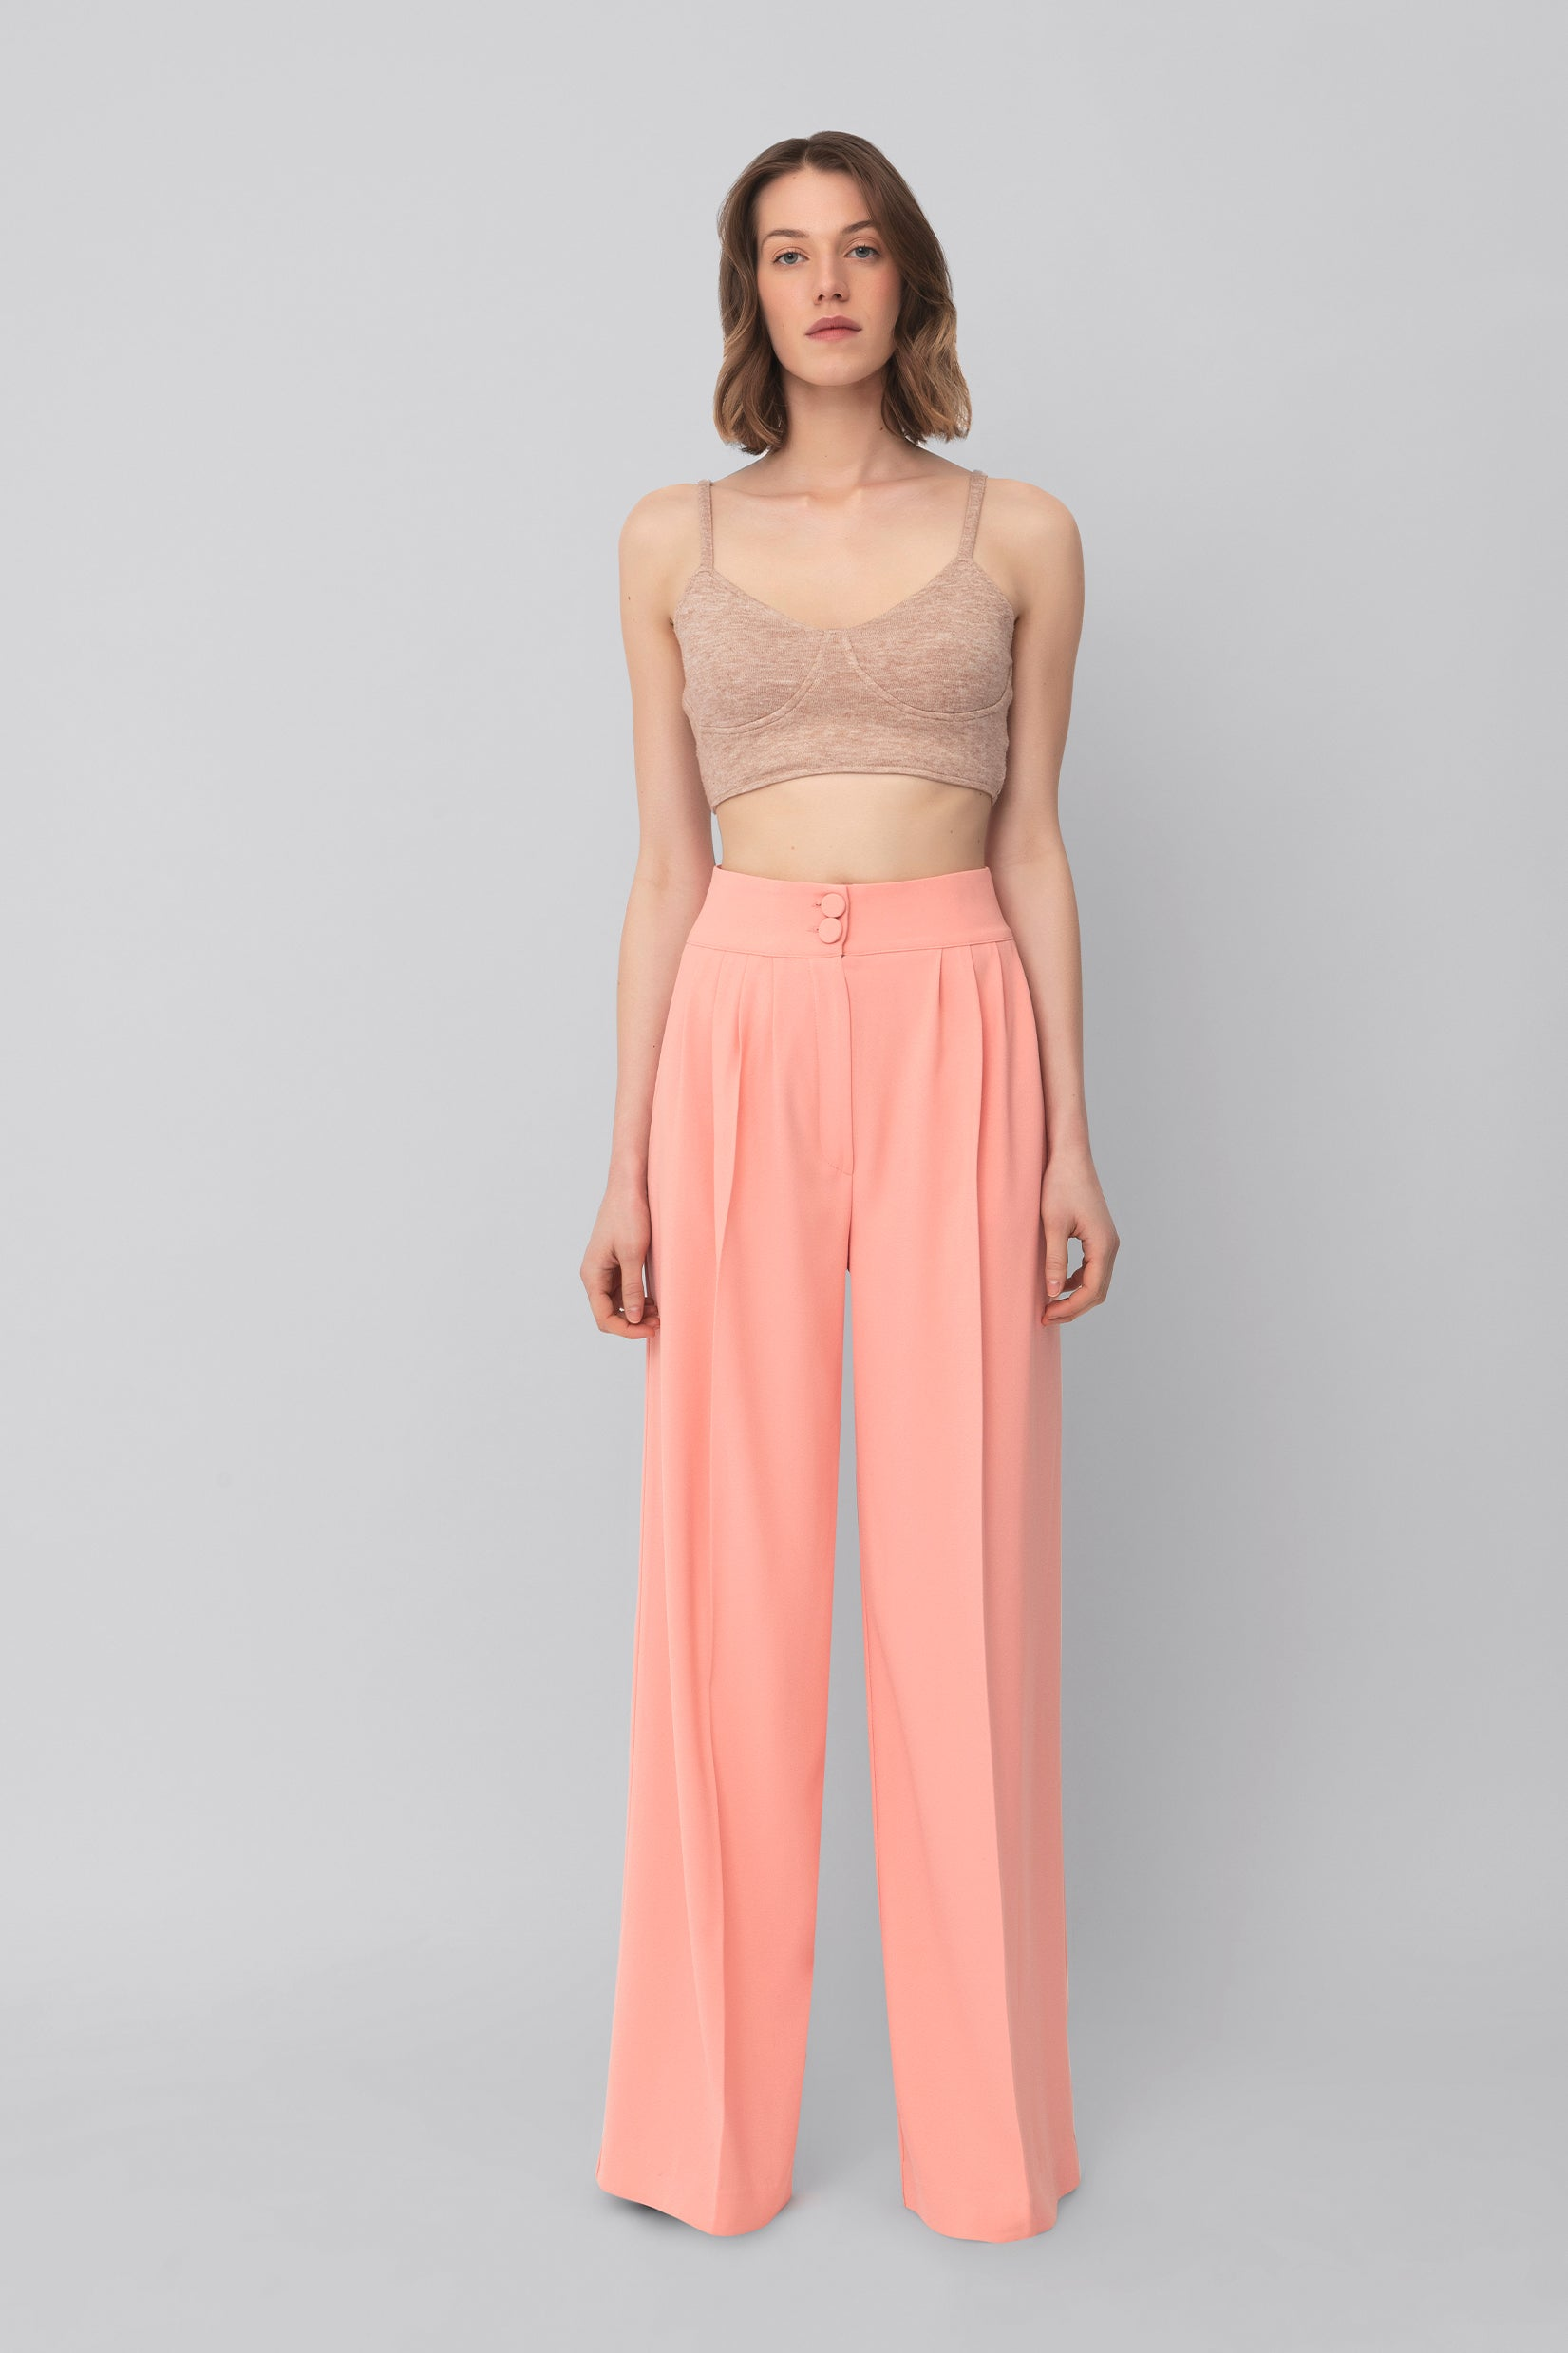 The Salmon Crepe Girlfriend Pants